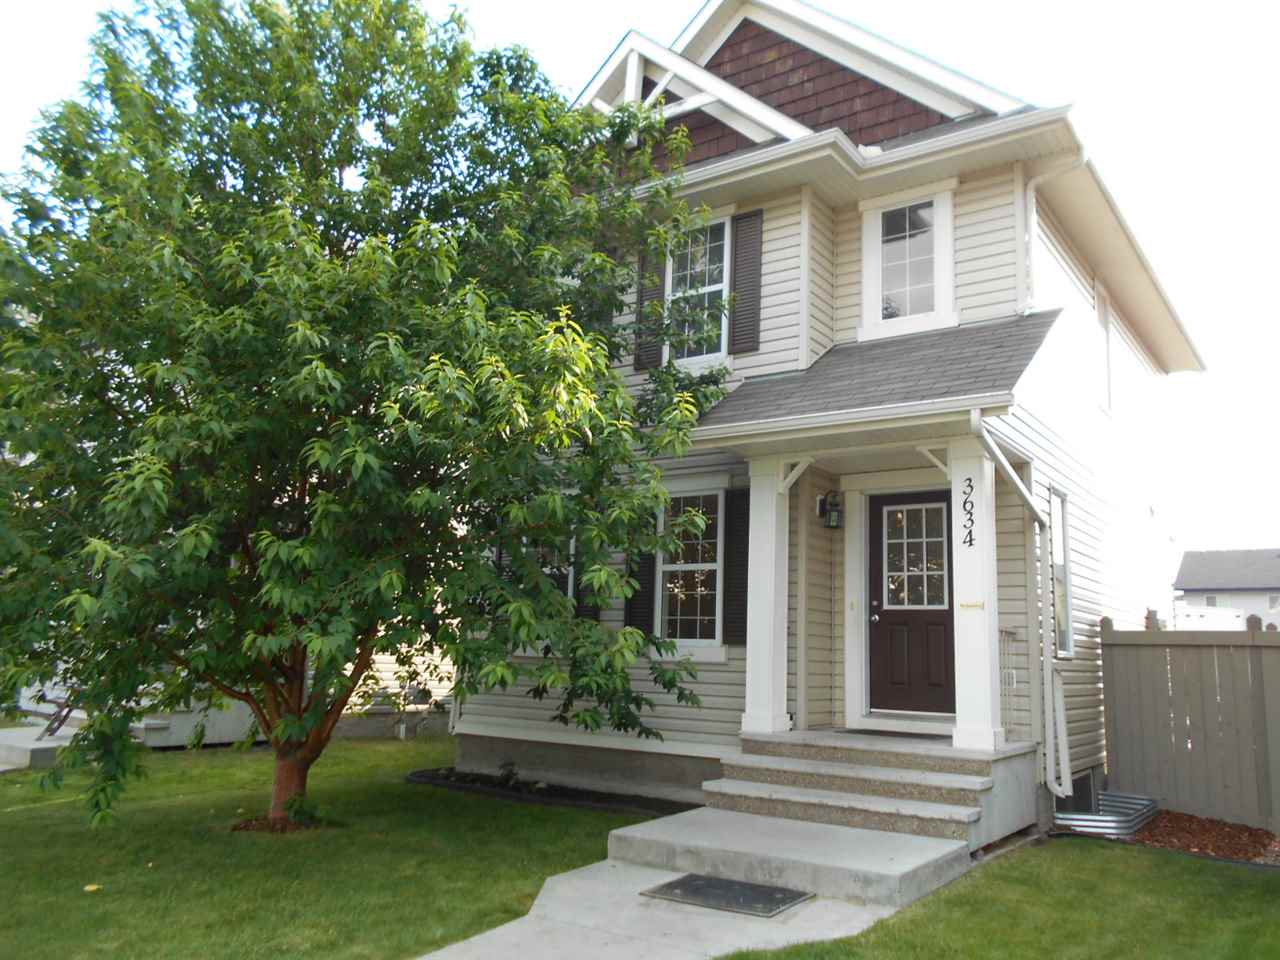 MLS® listing #E4164344 for sale located at 3634 12 Street